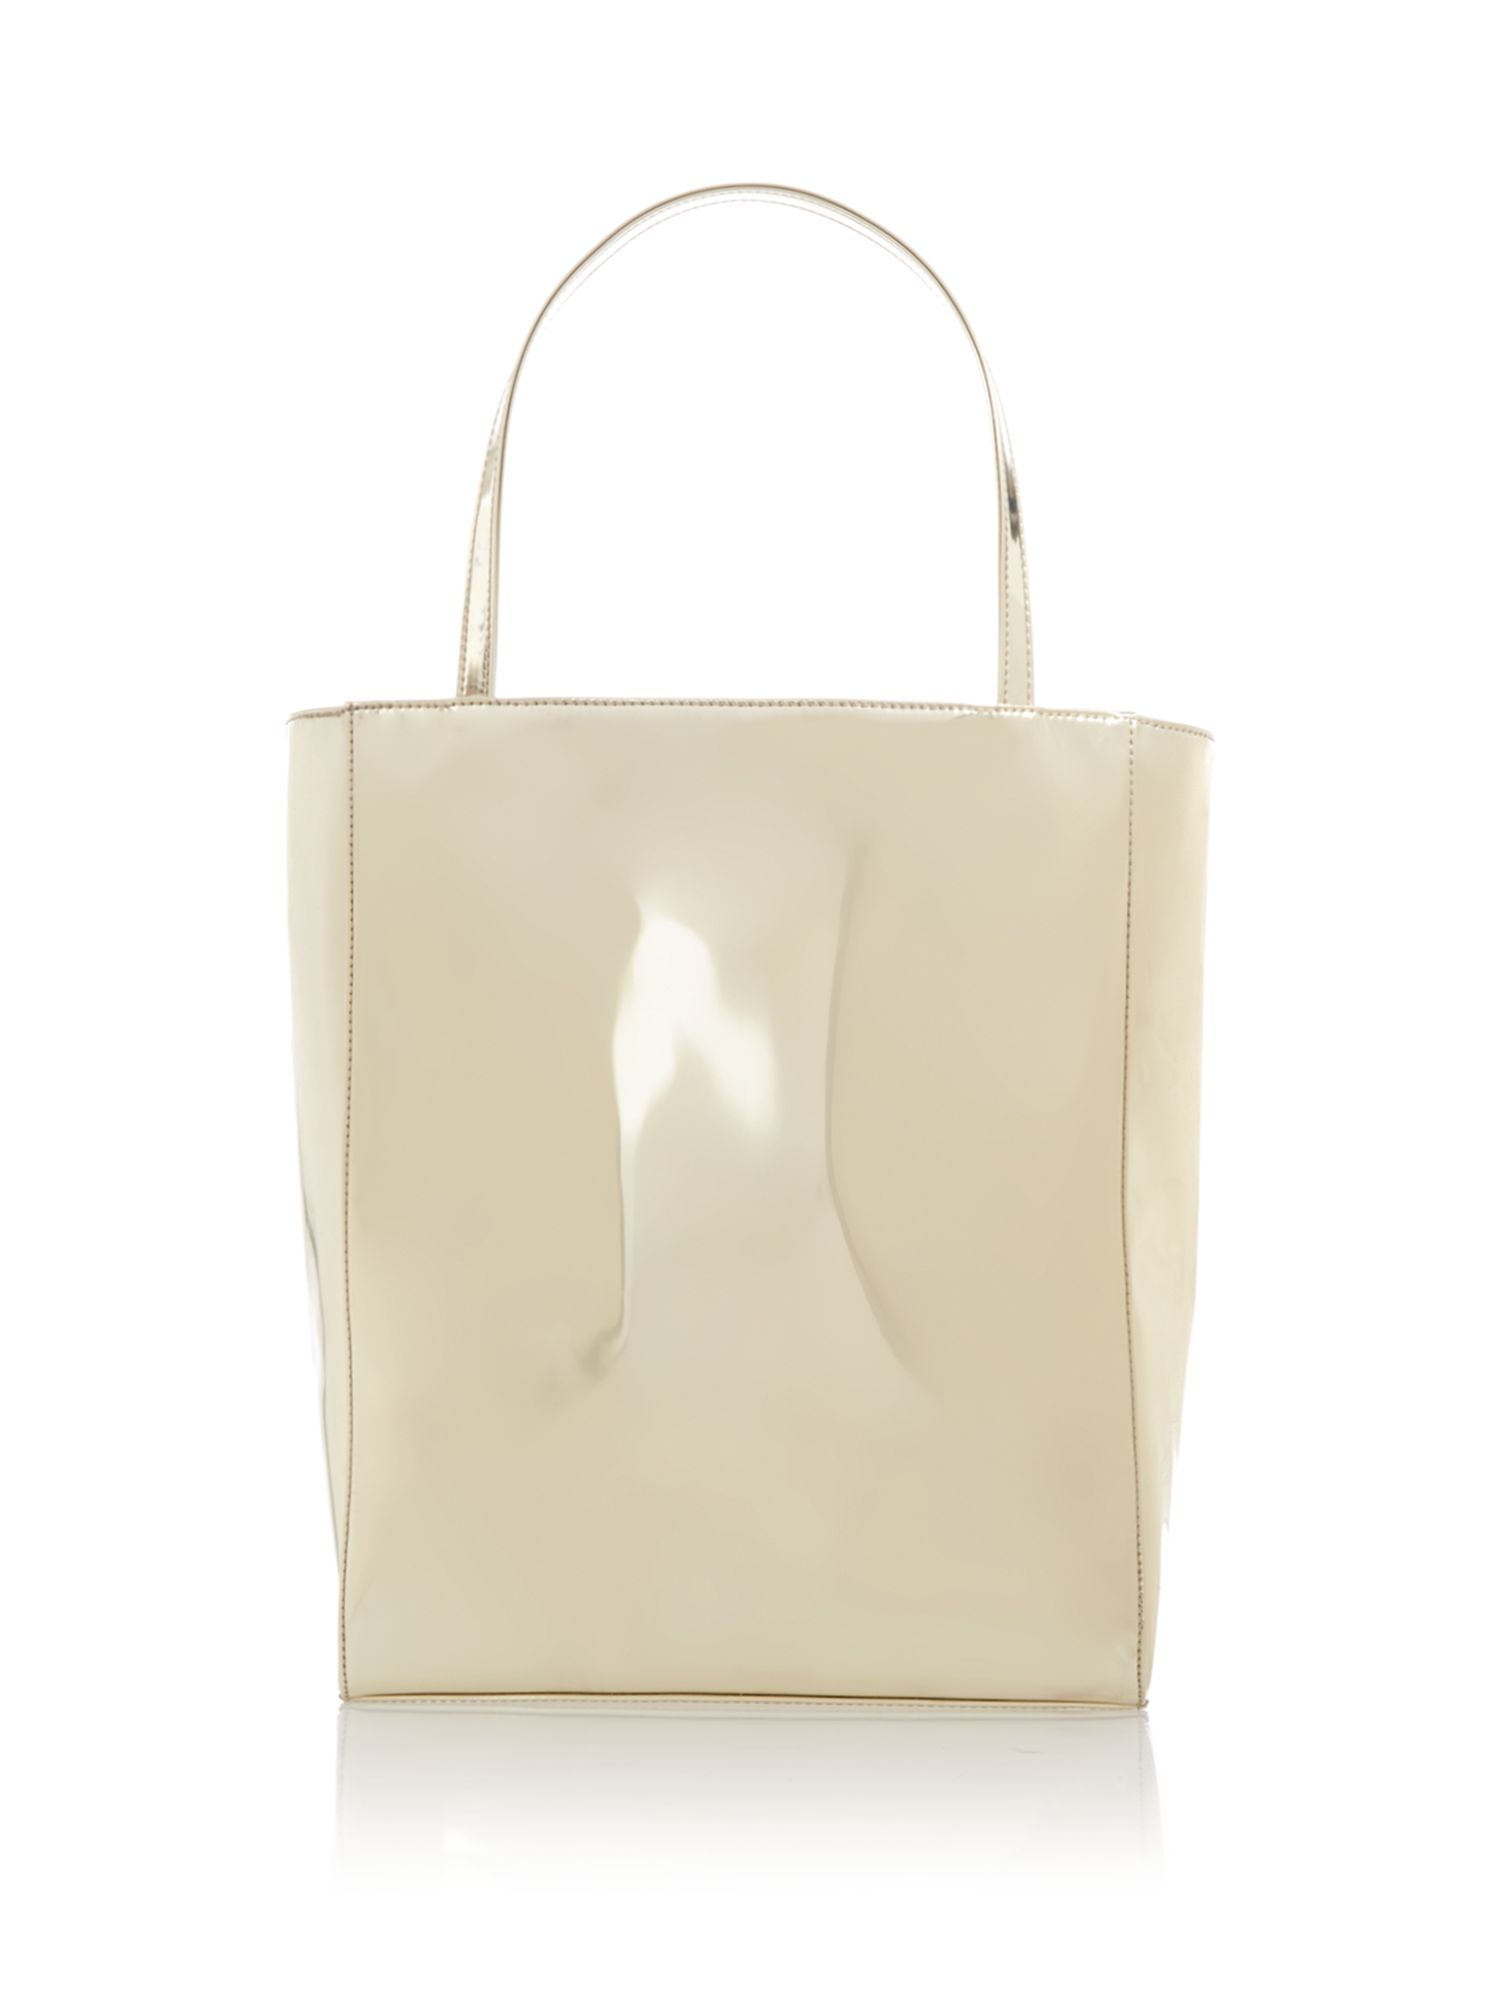 Gold large mirrored shopper bag